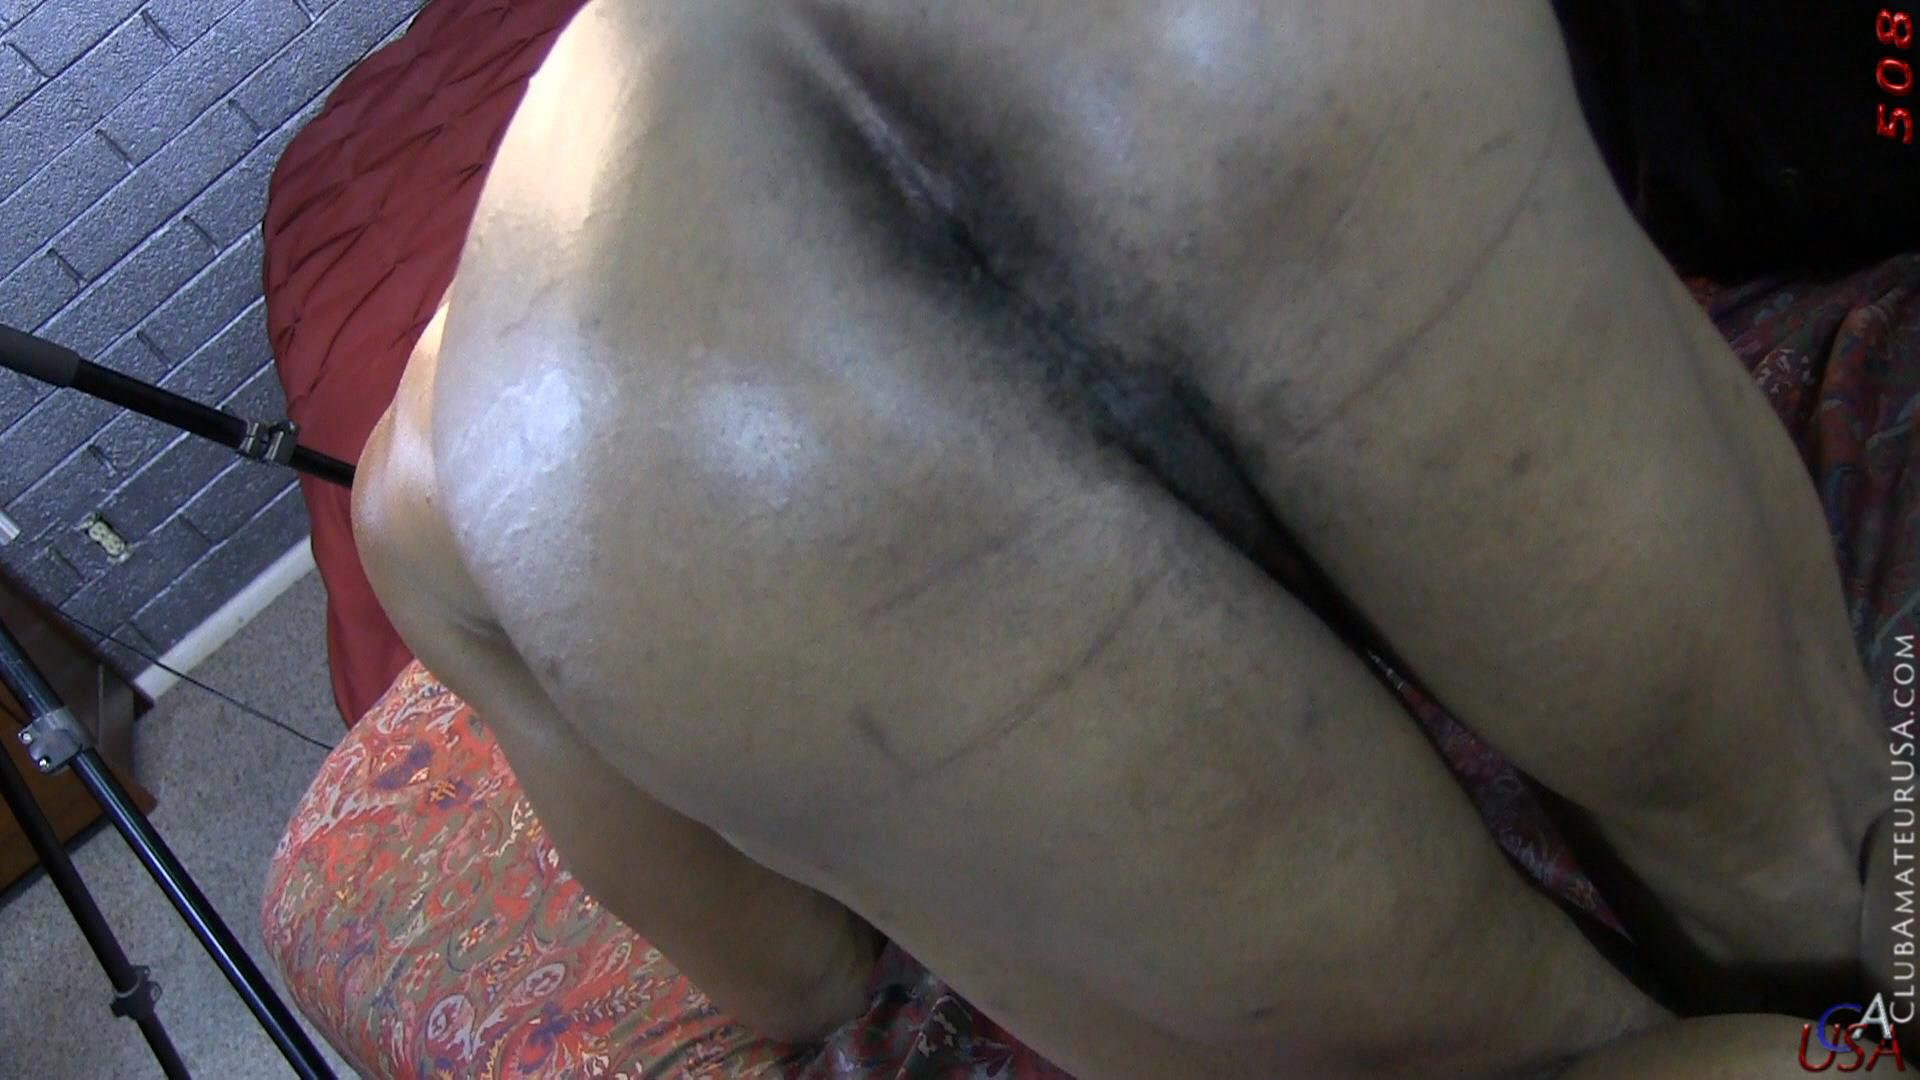 Club Amateur USA Gracen Straight Big Black Cock Getting Sucked With Cum Amateur Gay Porn 14 Straight Ghetto Thug Gets A Massage With A Happy Ending From A Guy